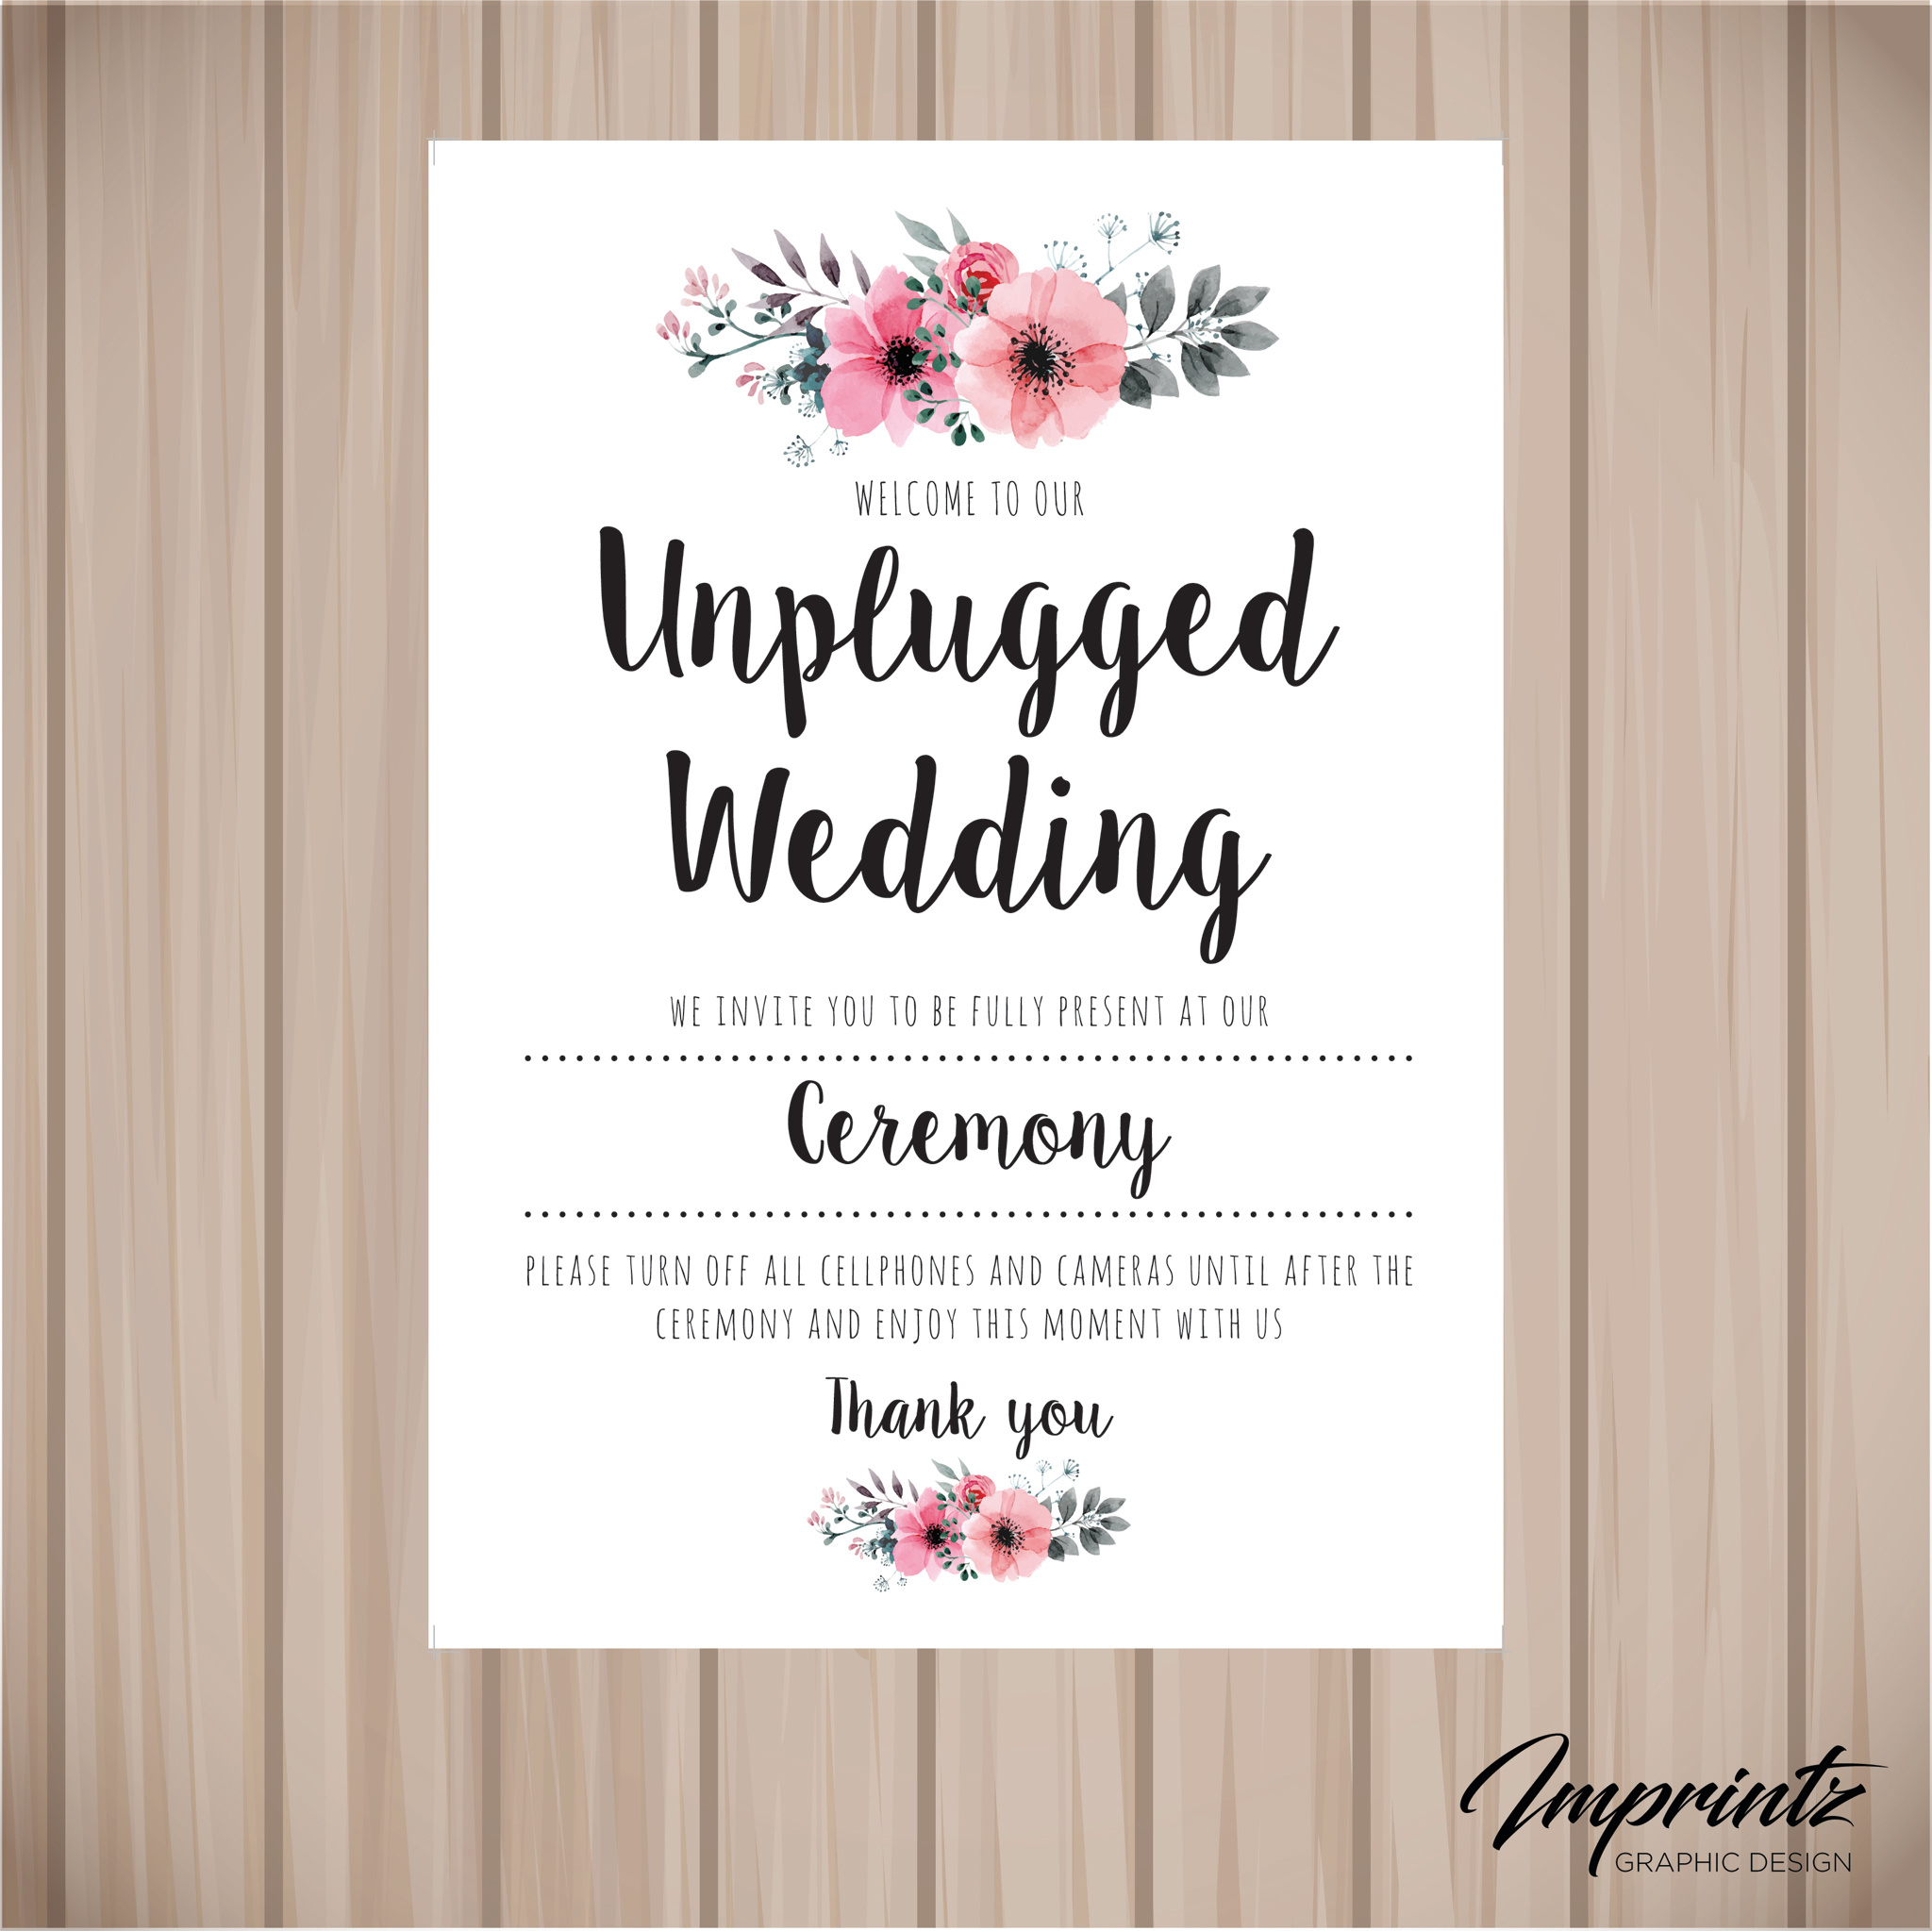 Unplugged wedding